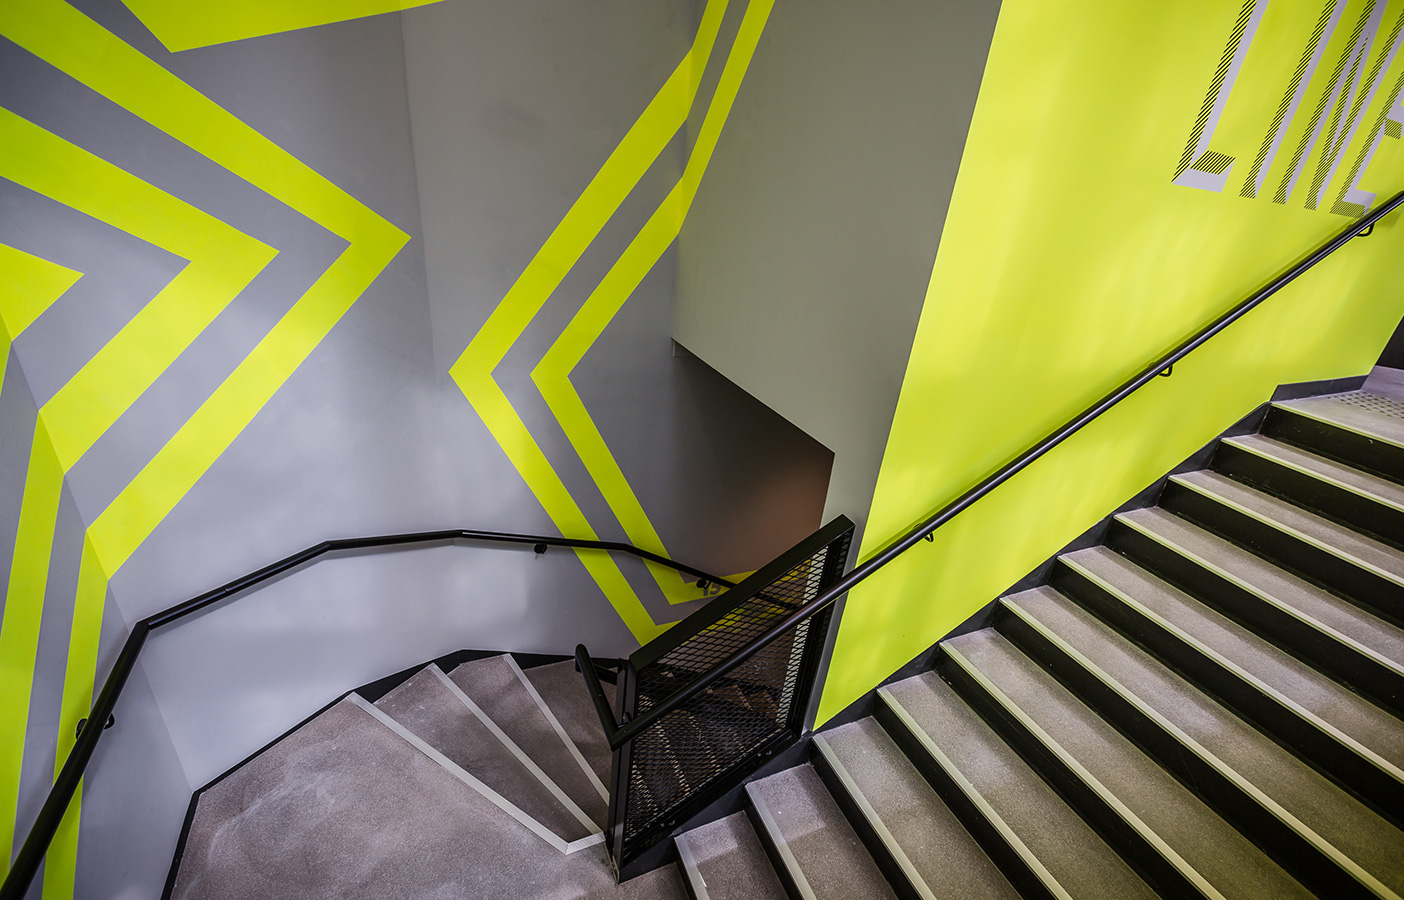 Aldworth James & Bond | Nike Store Les Halles, Paris - staircase decoration